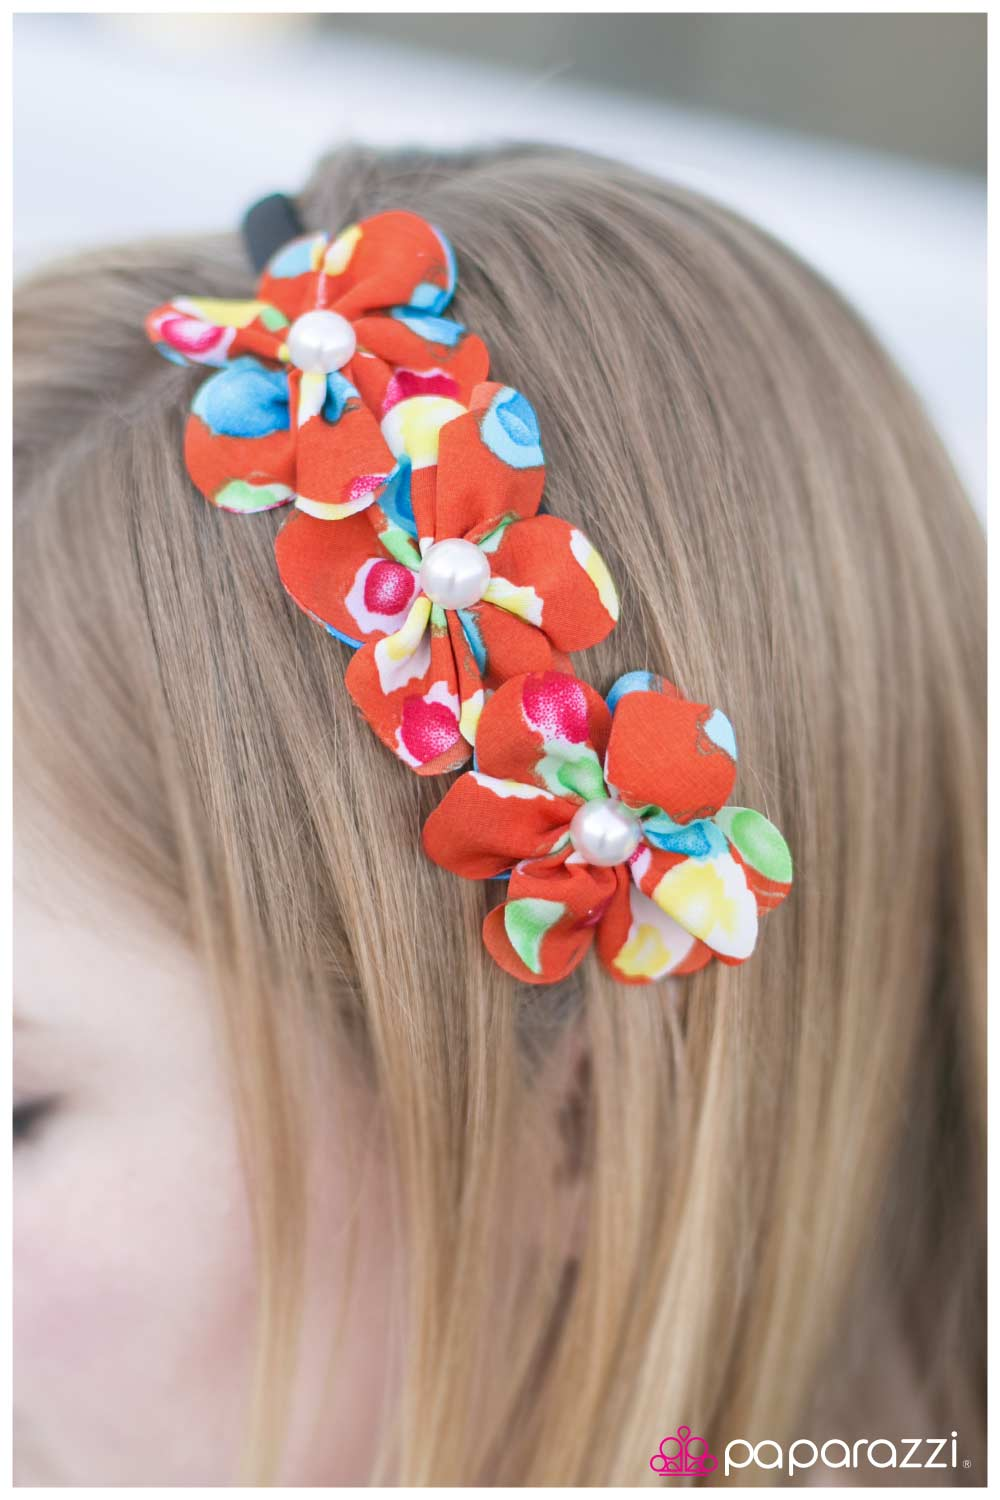 Surprise Party - Paparazzi headband